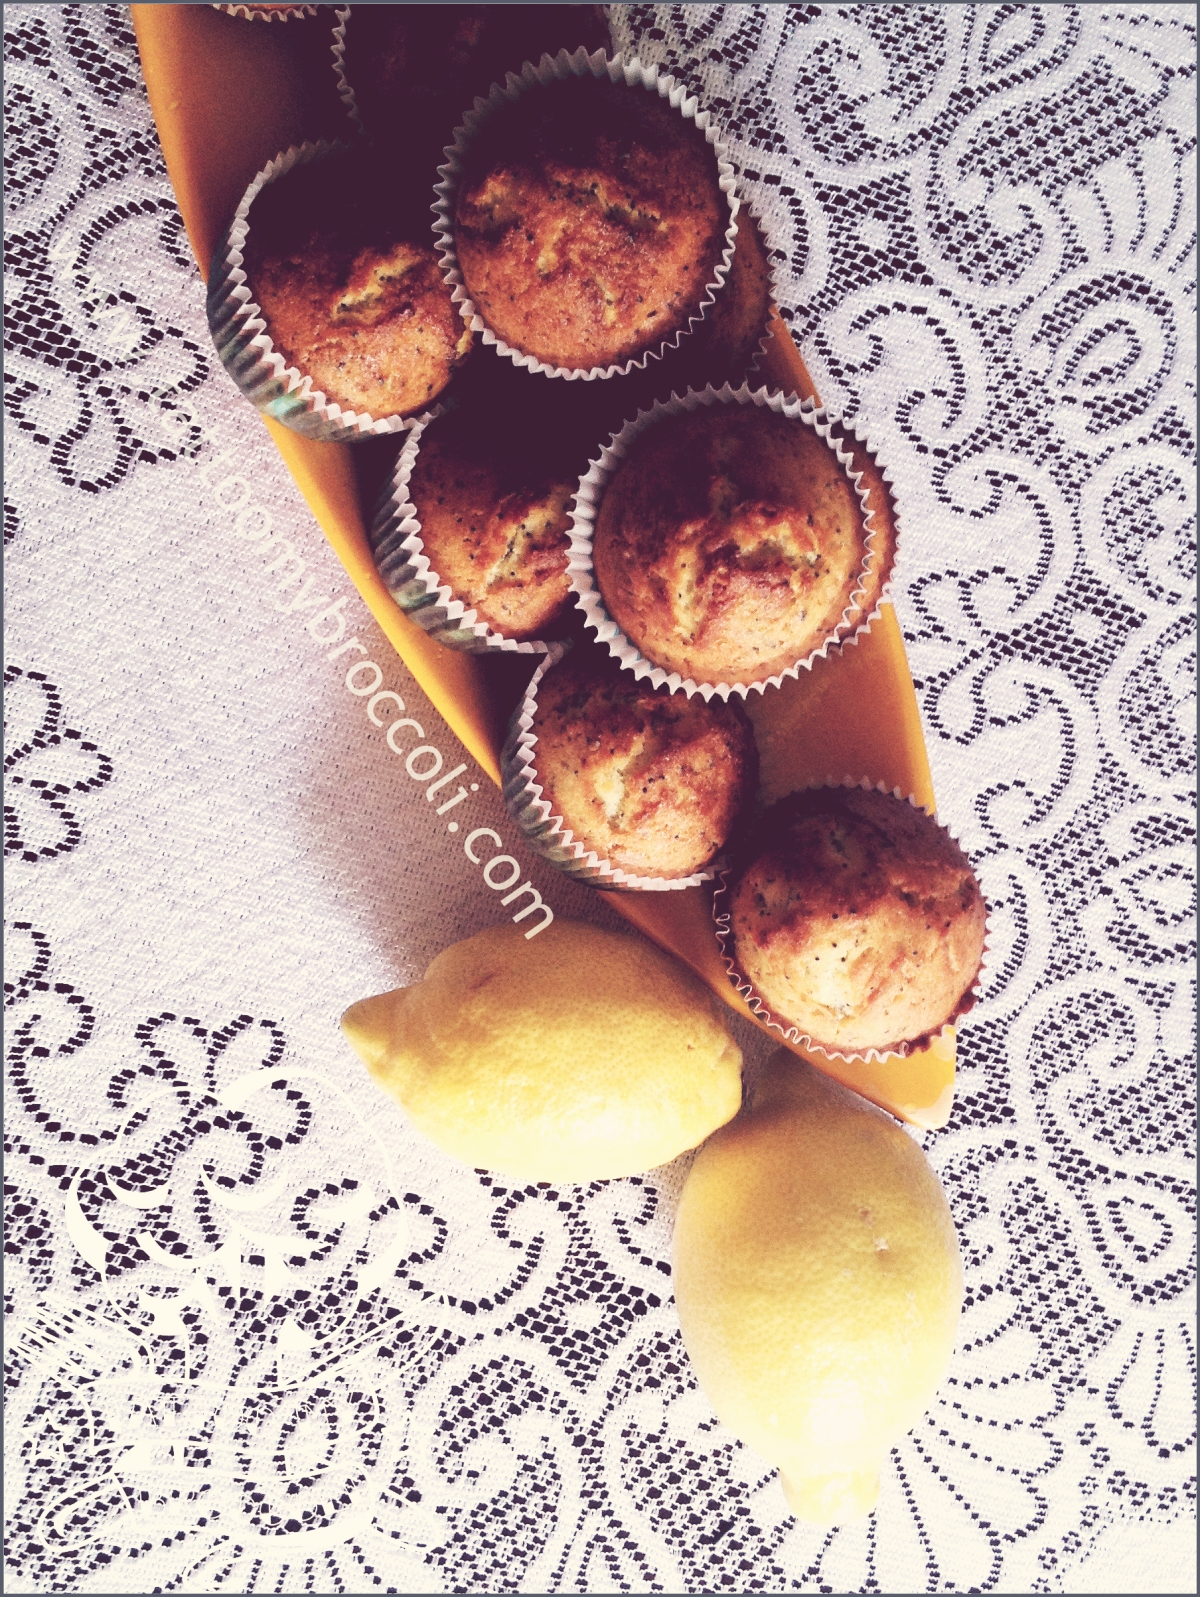 Lemon & Poppy Seed Muffins